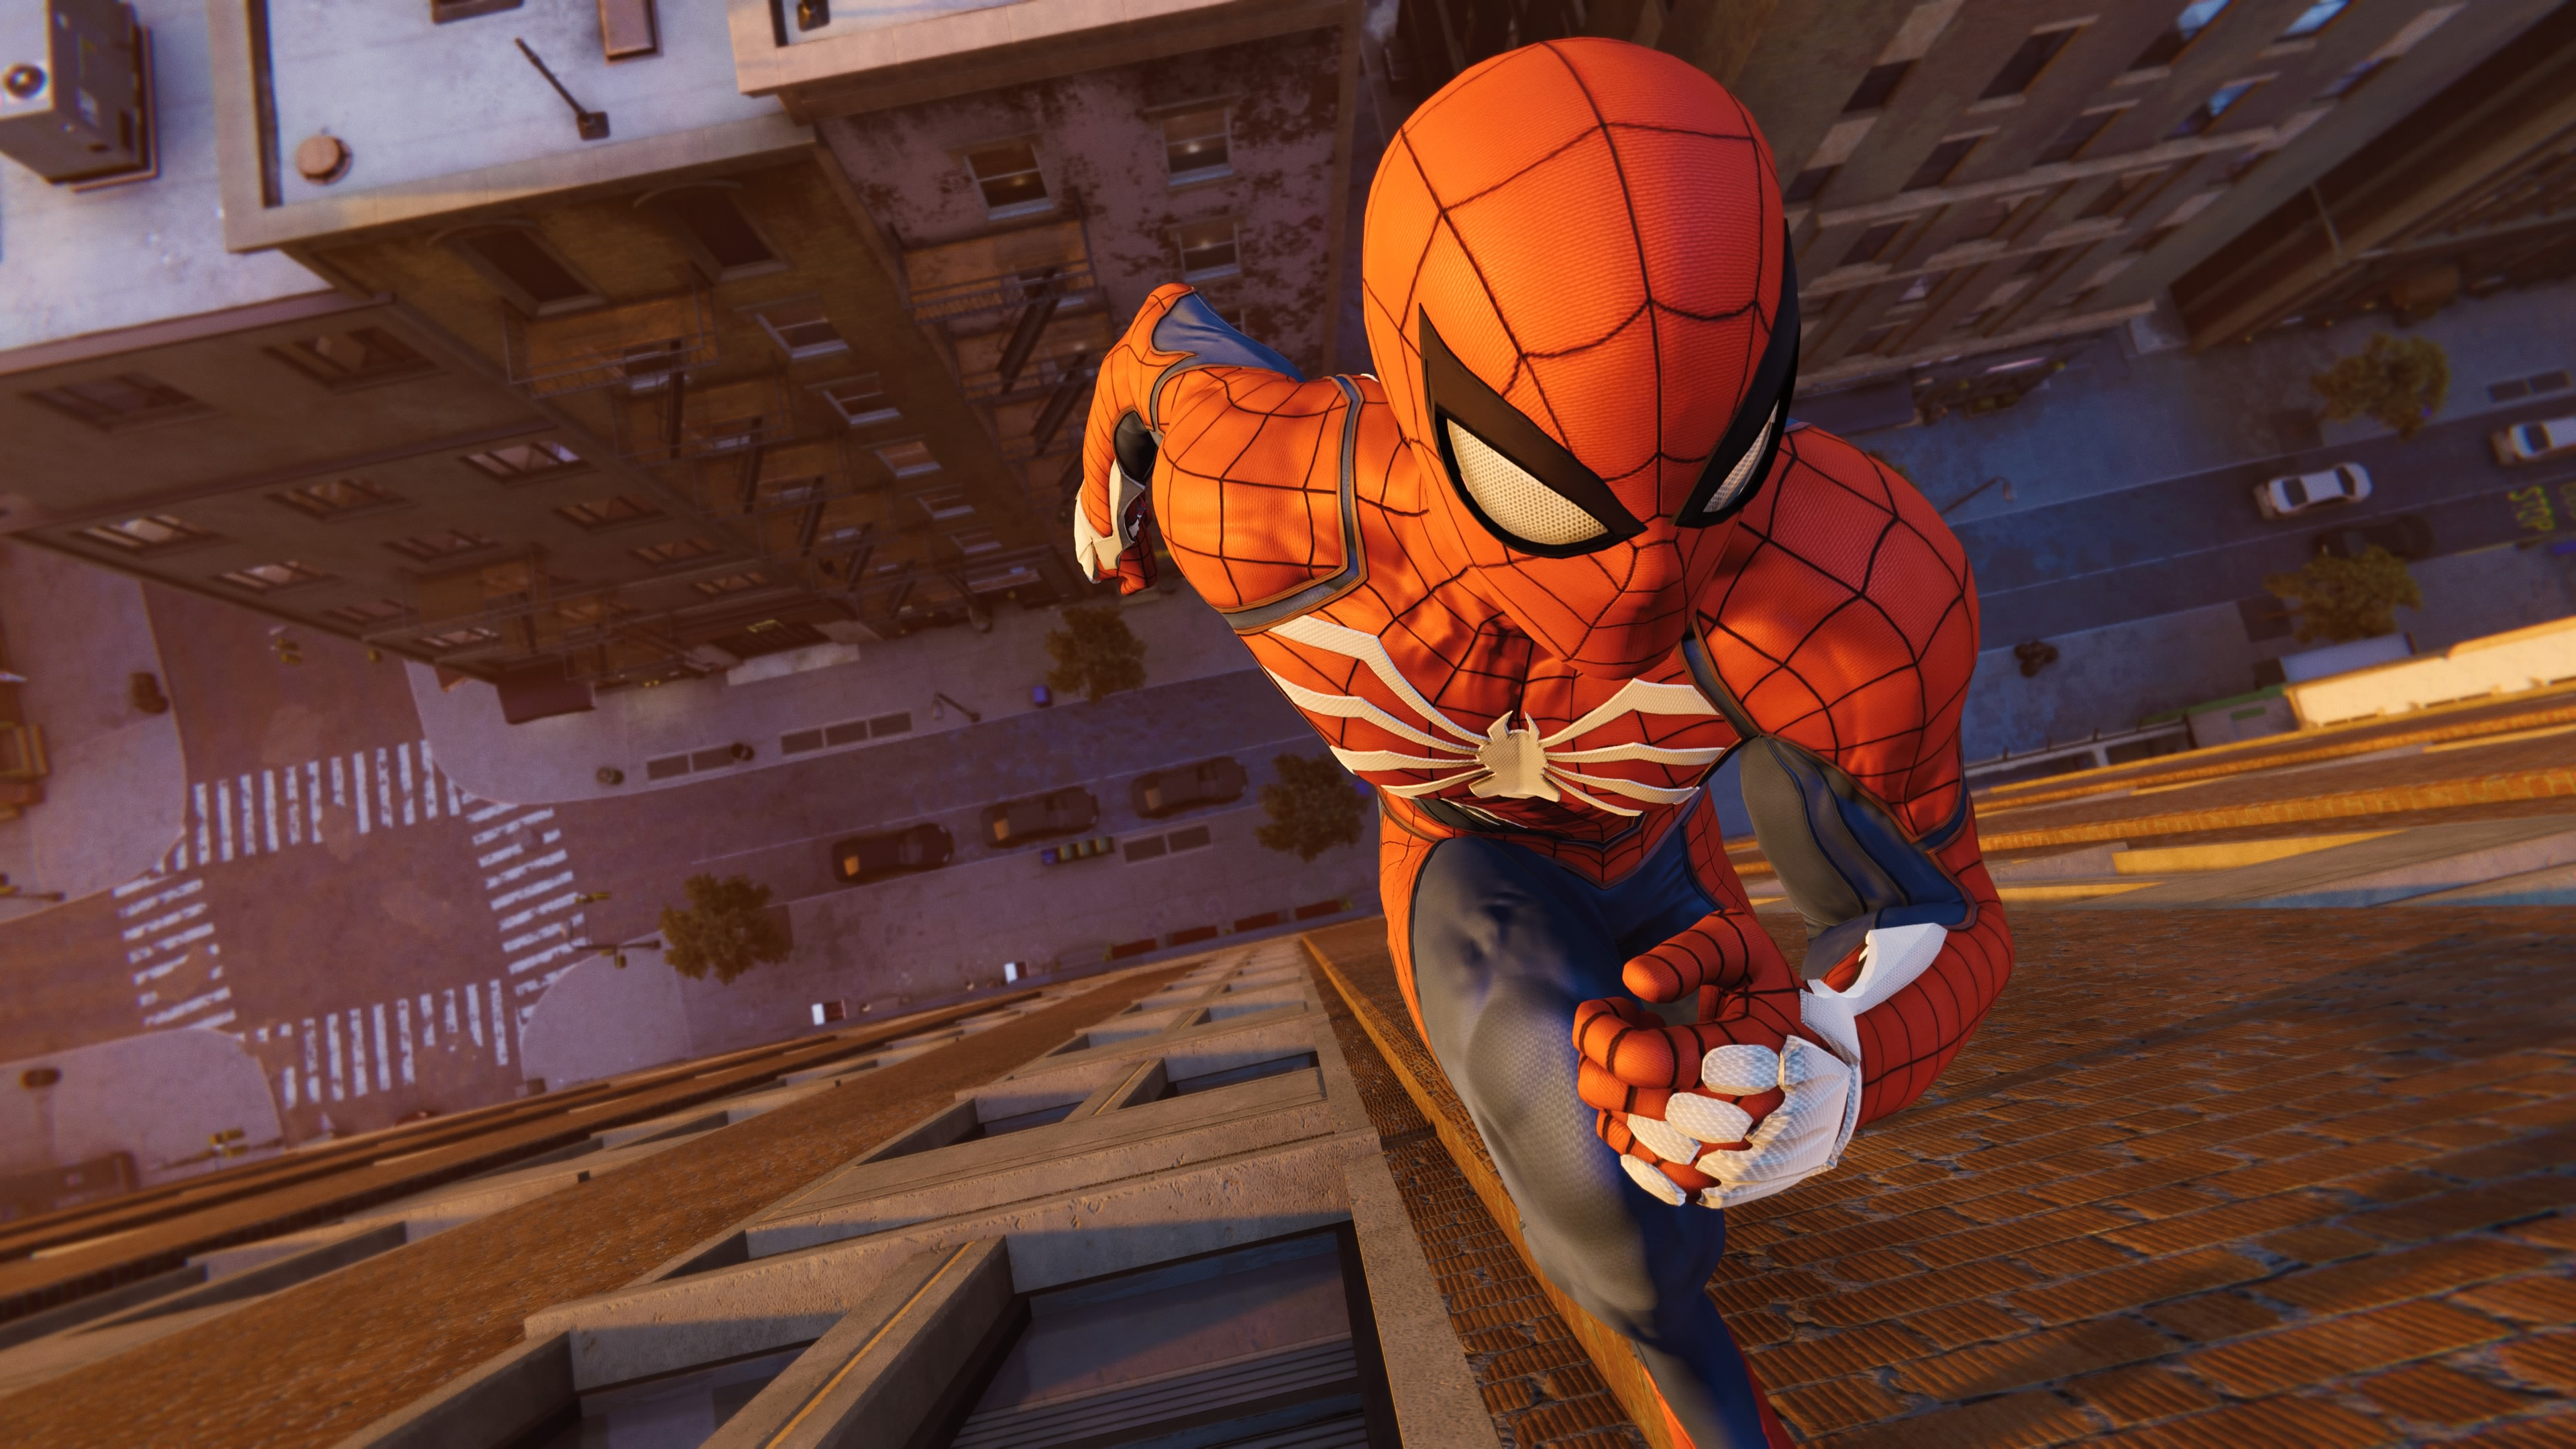 Spider-Man for PS4 Includes Clever Grand Theft Auto IV Easter Egg